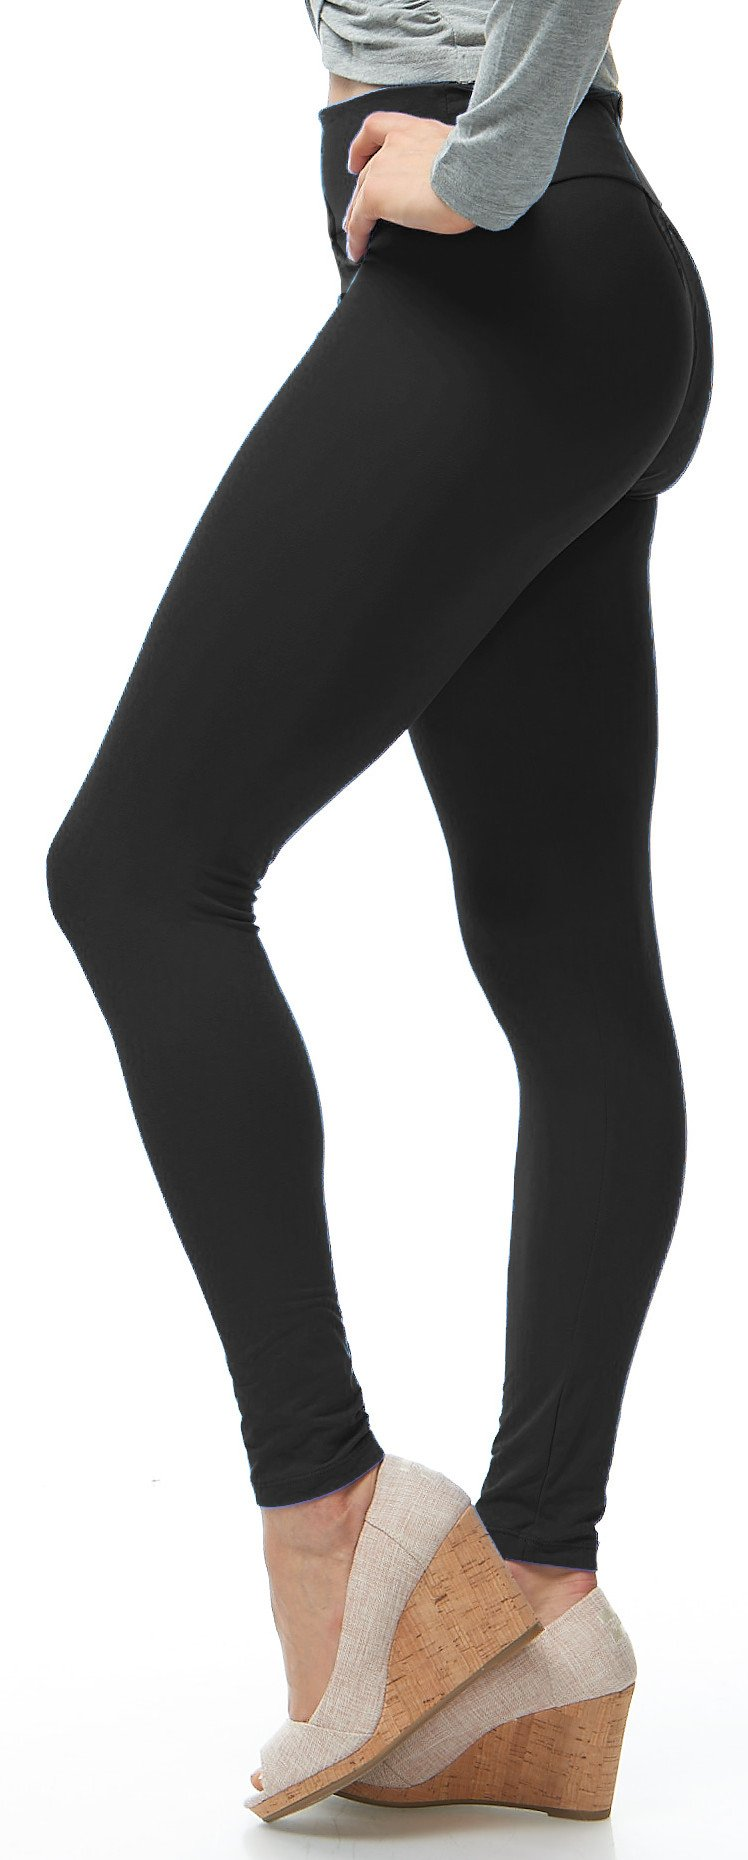 LMB Yoga Leggings Buttery Soft Material - Variety of Colors - Black by LMB (Image #2)